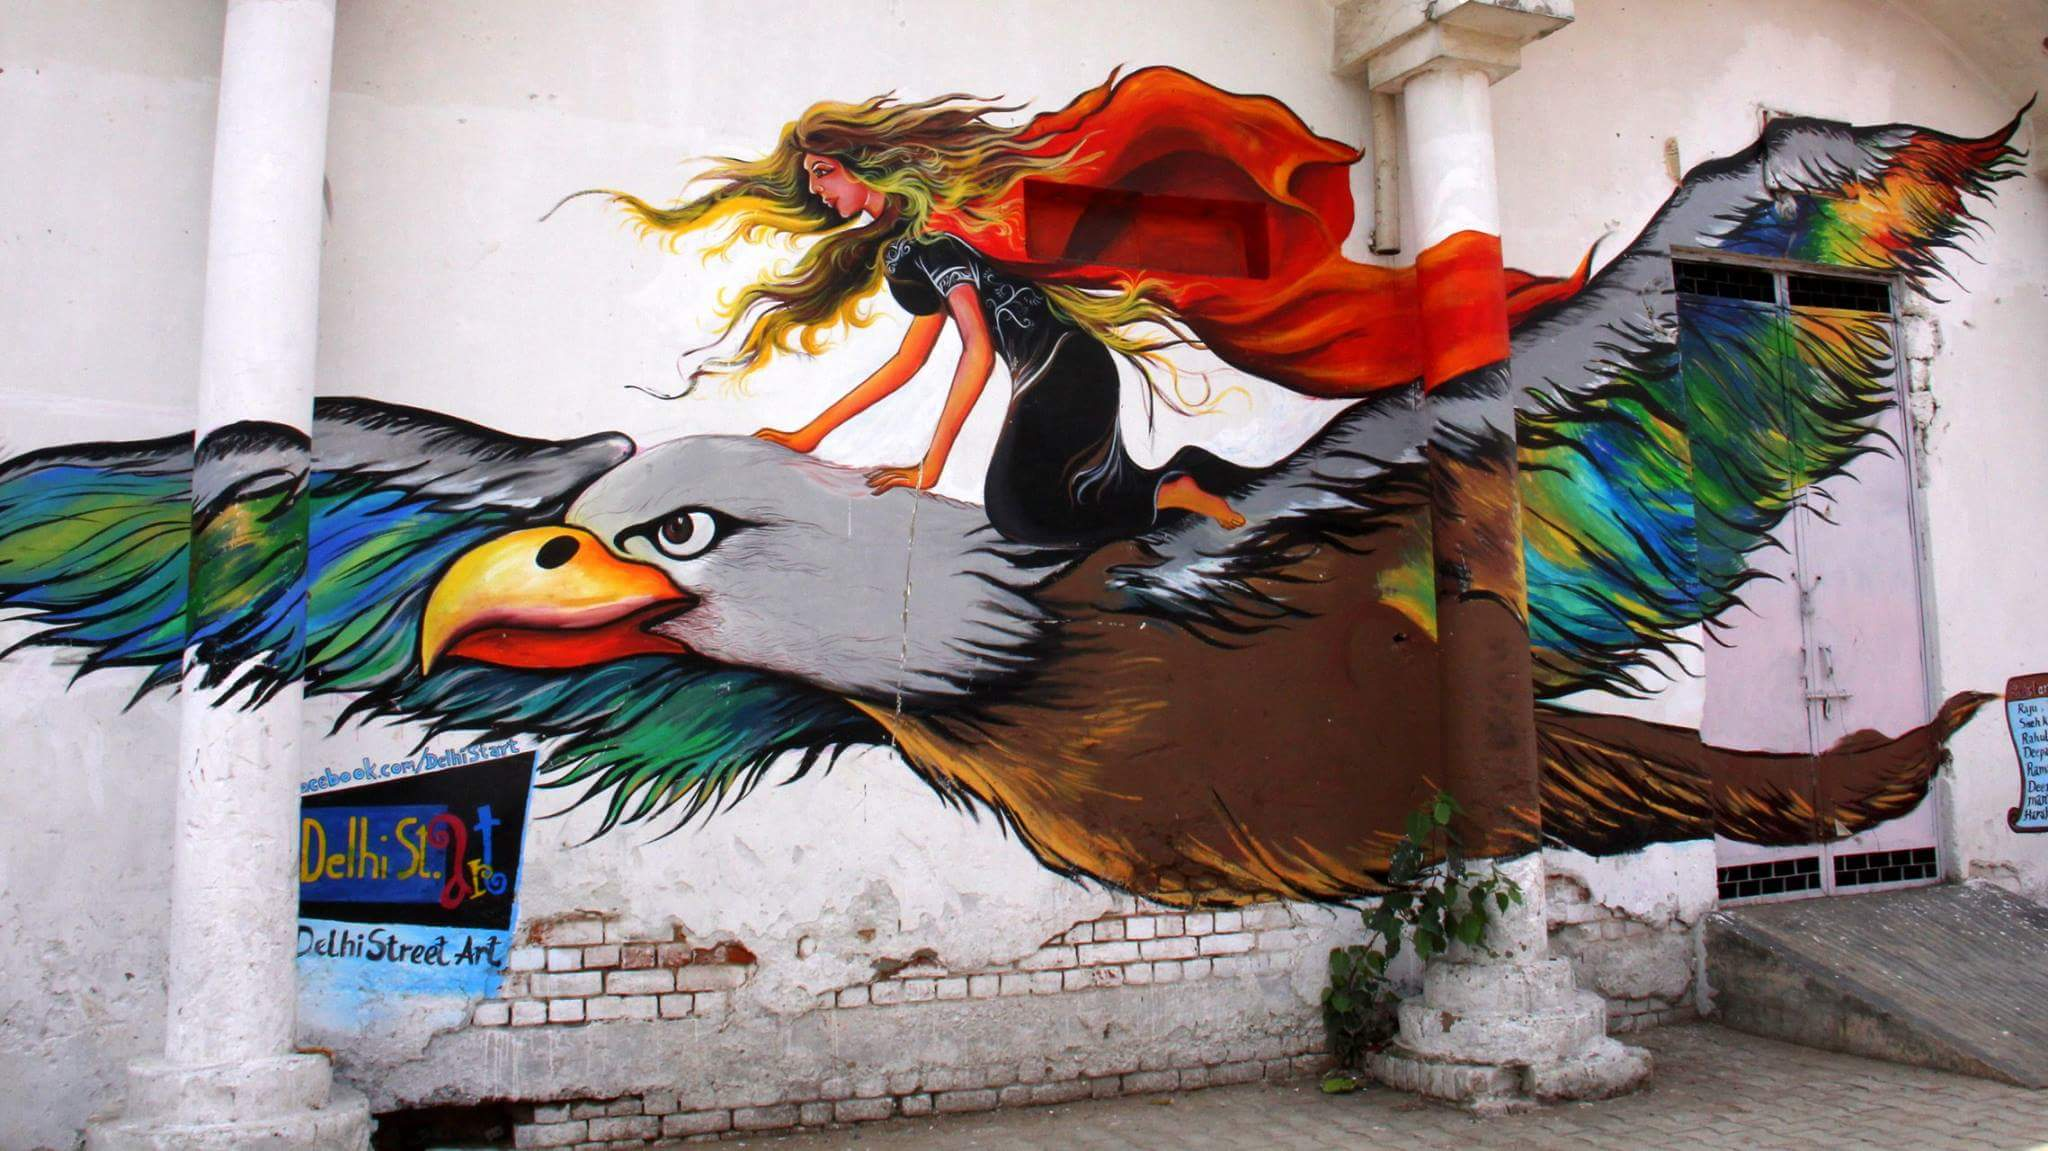 Delhi street art can also be found in some places at Connaught Place